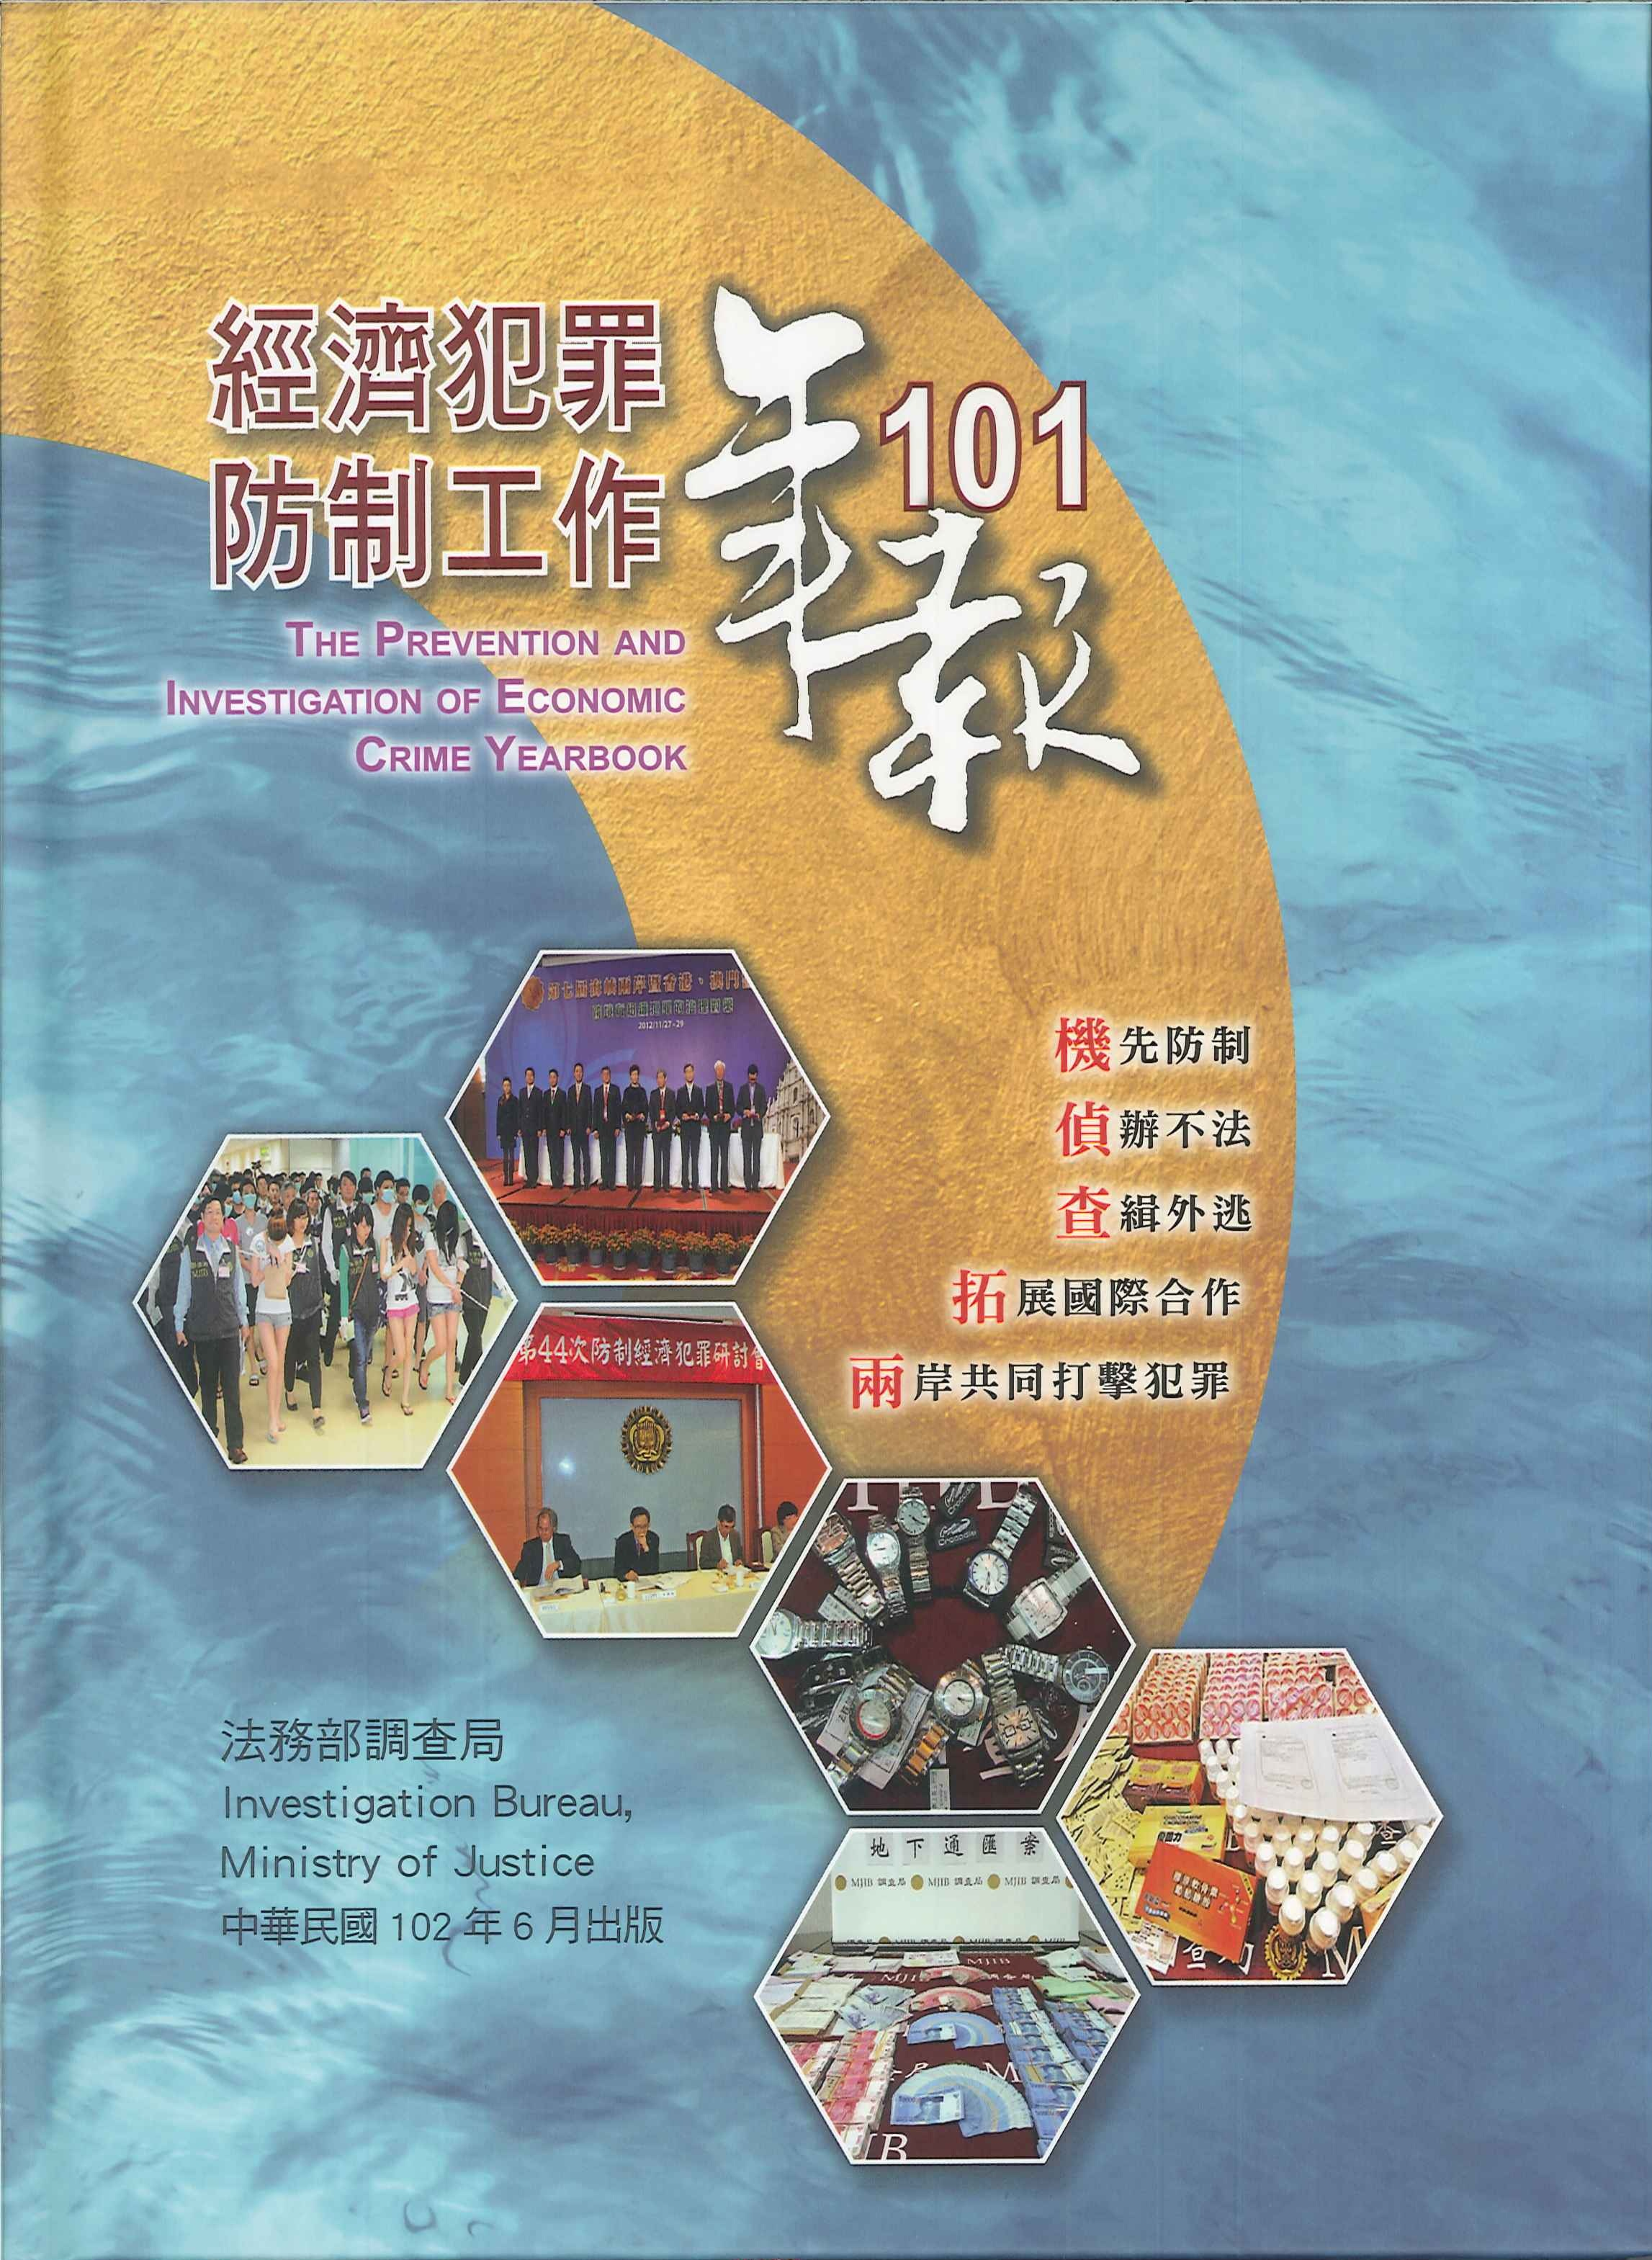 經濟犯罪防制工作年報=The Prevention and investigation of economic crime yearbook